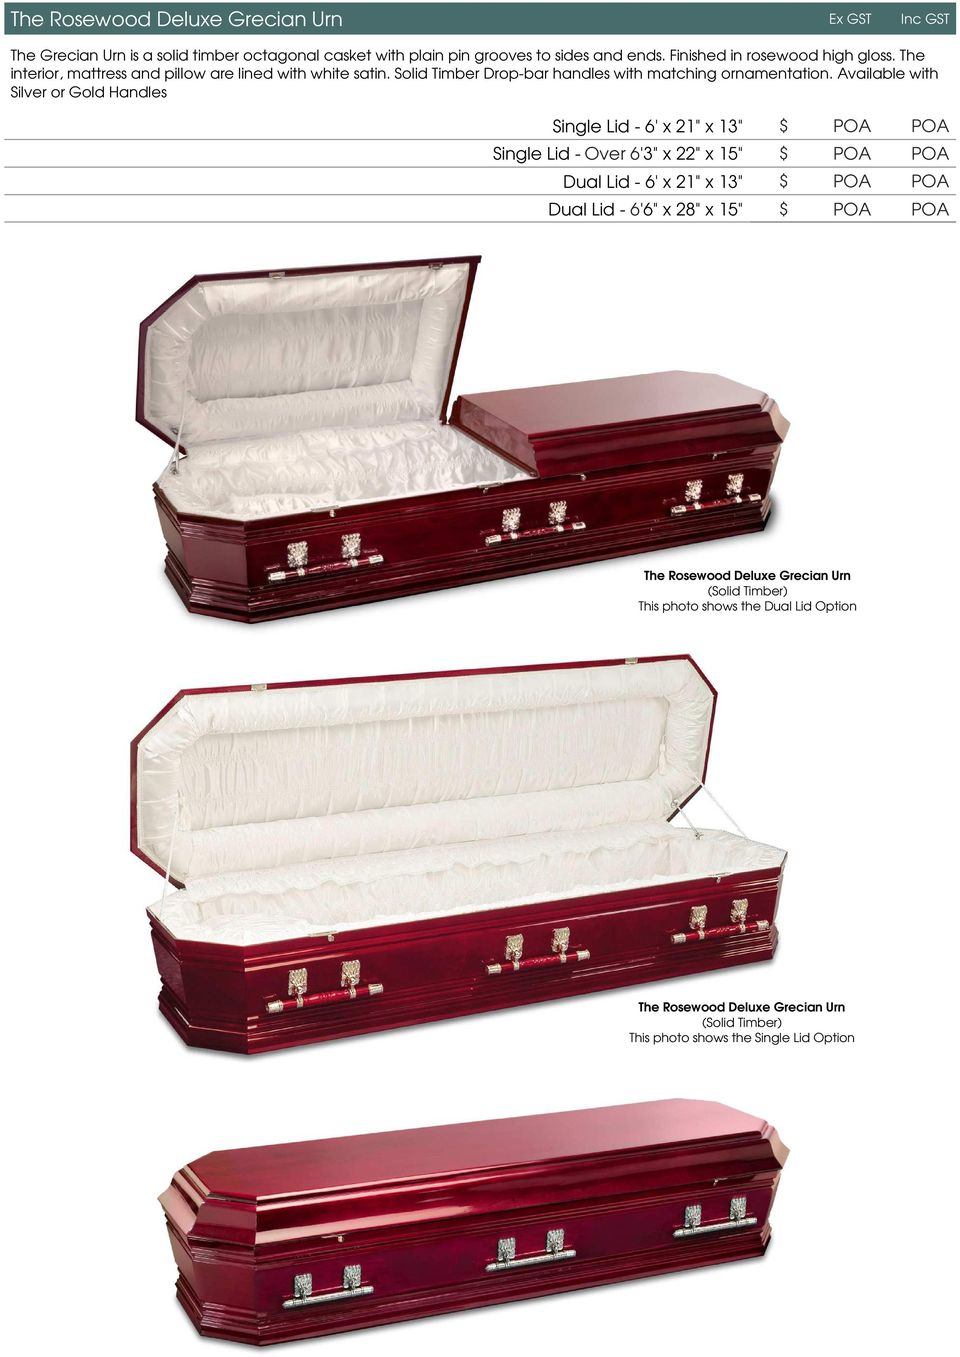 "Available with Silver or Gold Handles Single Lid - 6' x 21"" x 13"" $ POA POA The Victoria White Coffin with or without Single Lid - Over 6'3"" x 22"" x 15"" $ POA POA Dual Lid - 6' x 21"" x"